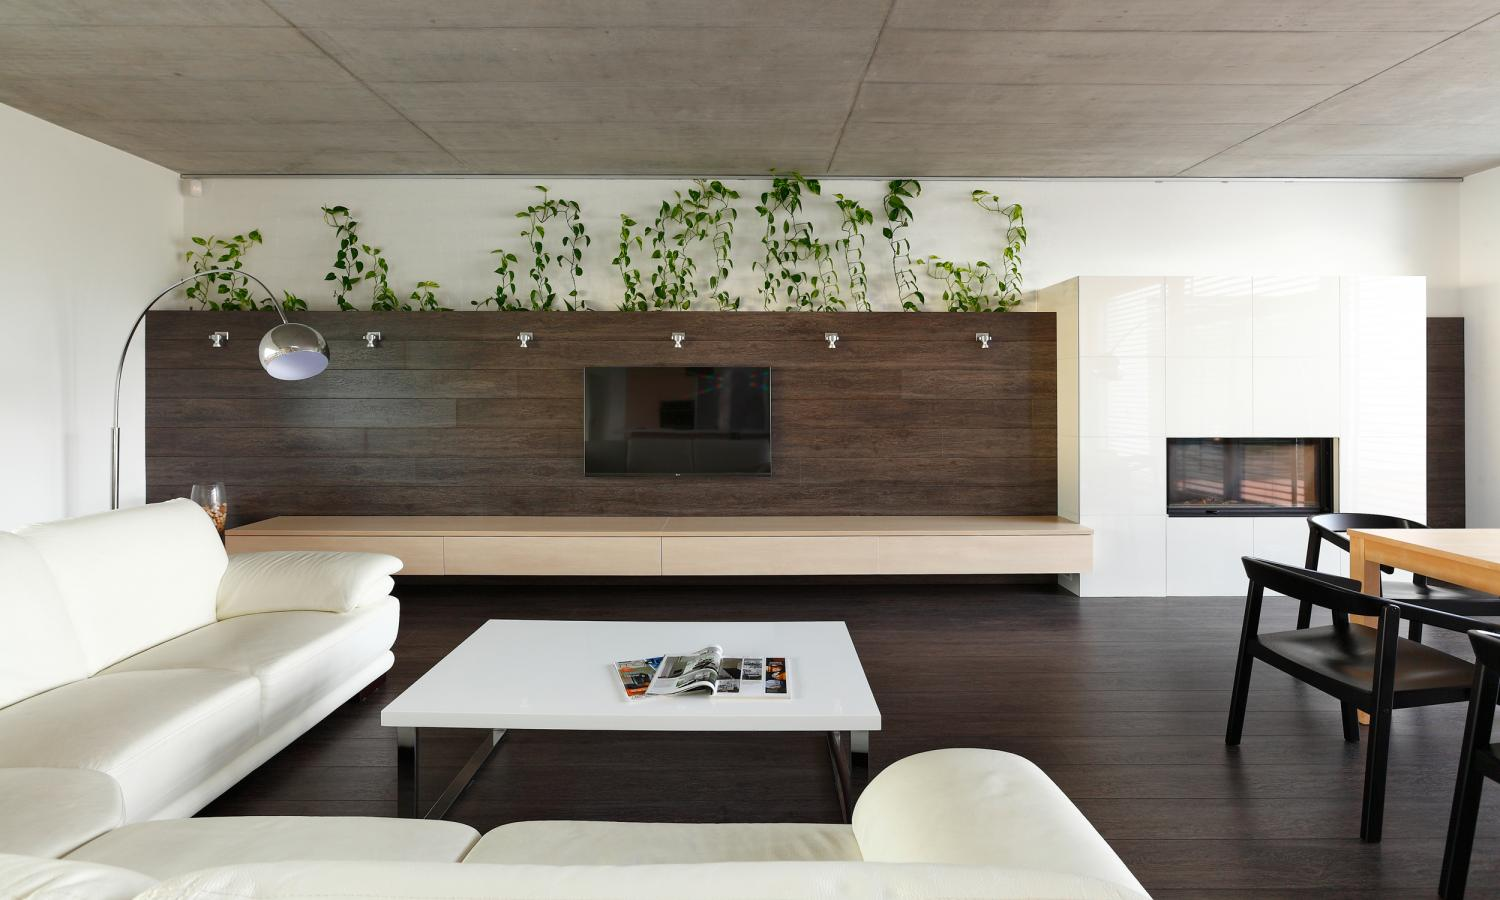 Amazing Fireplace - Indoor plant inspiration to transform your space